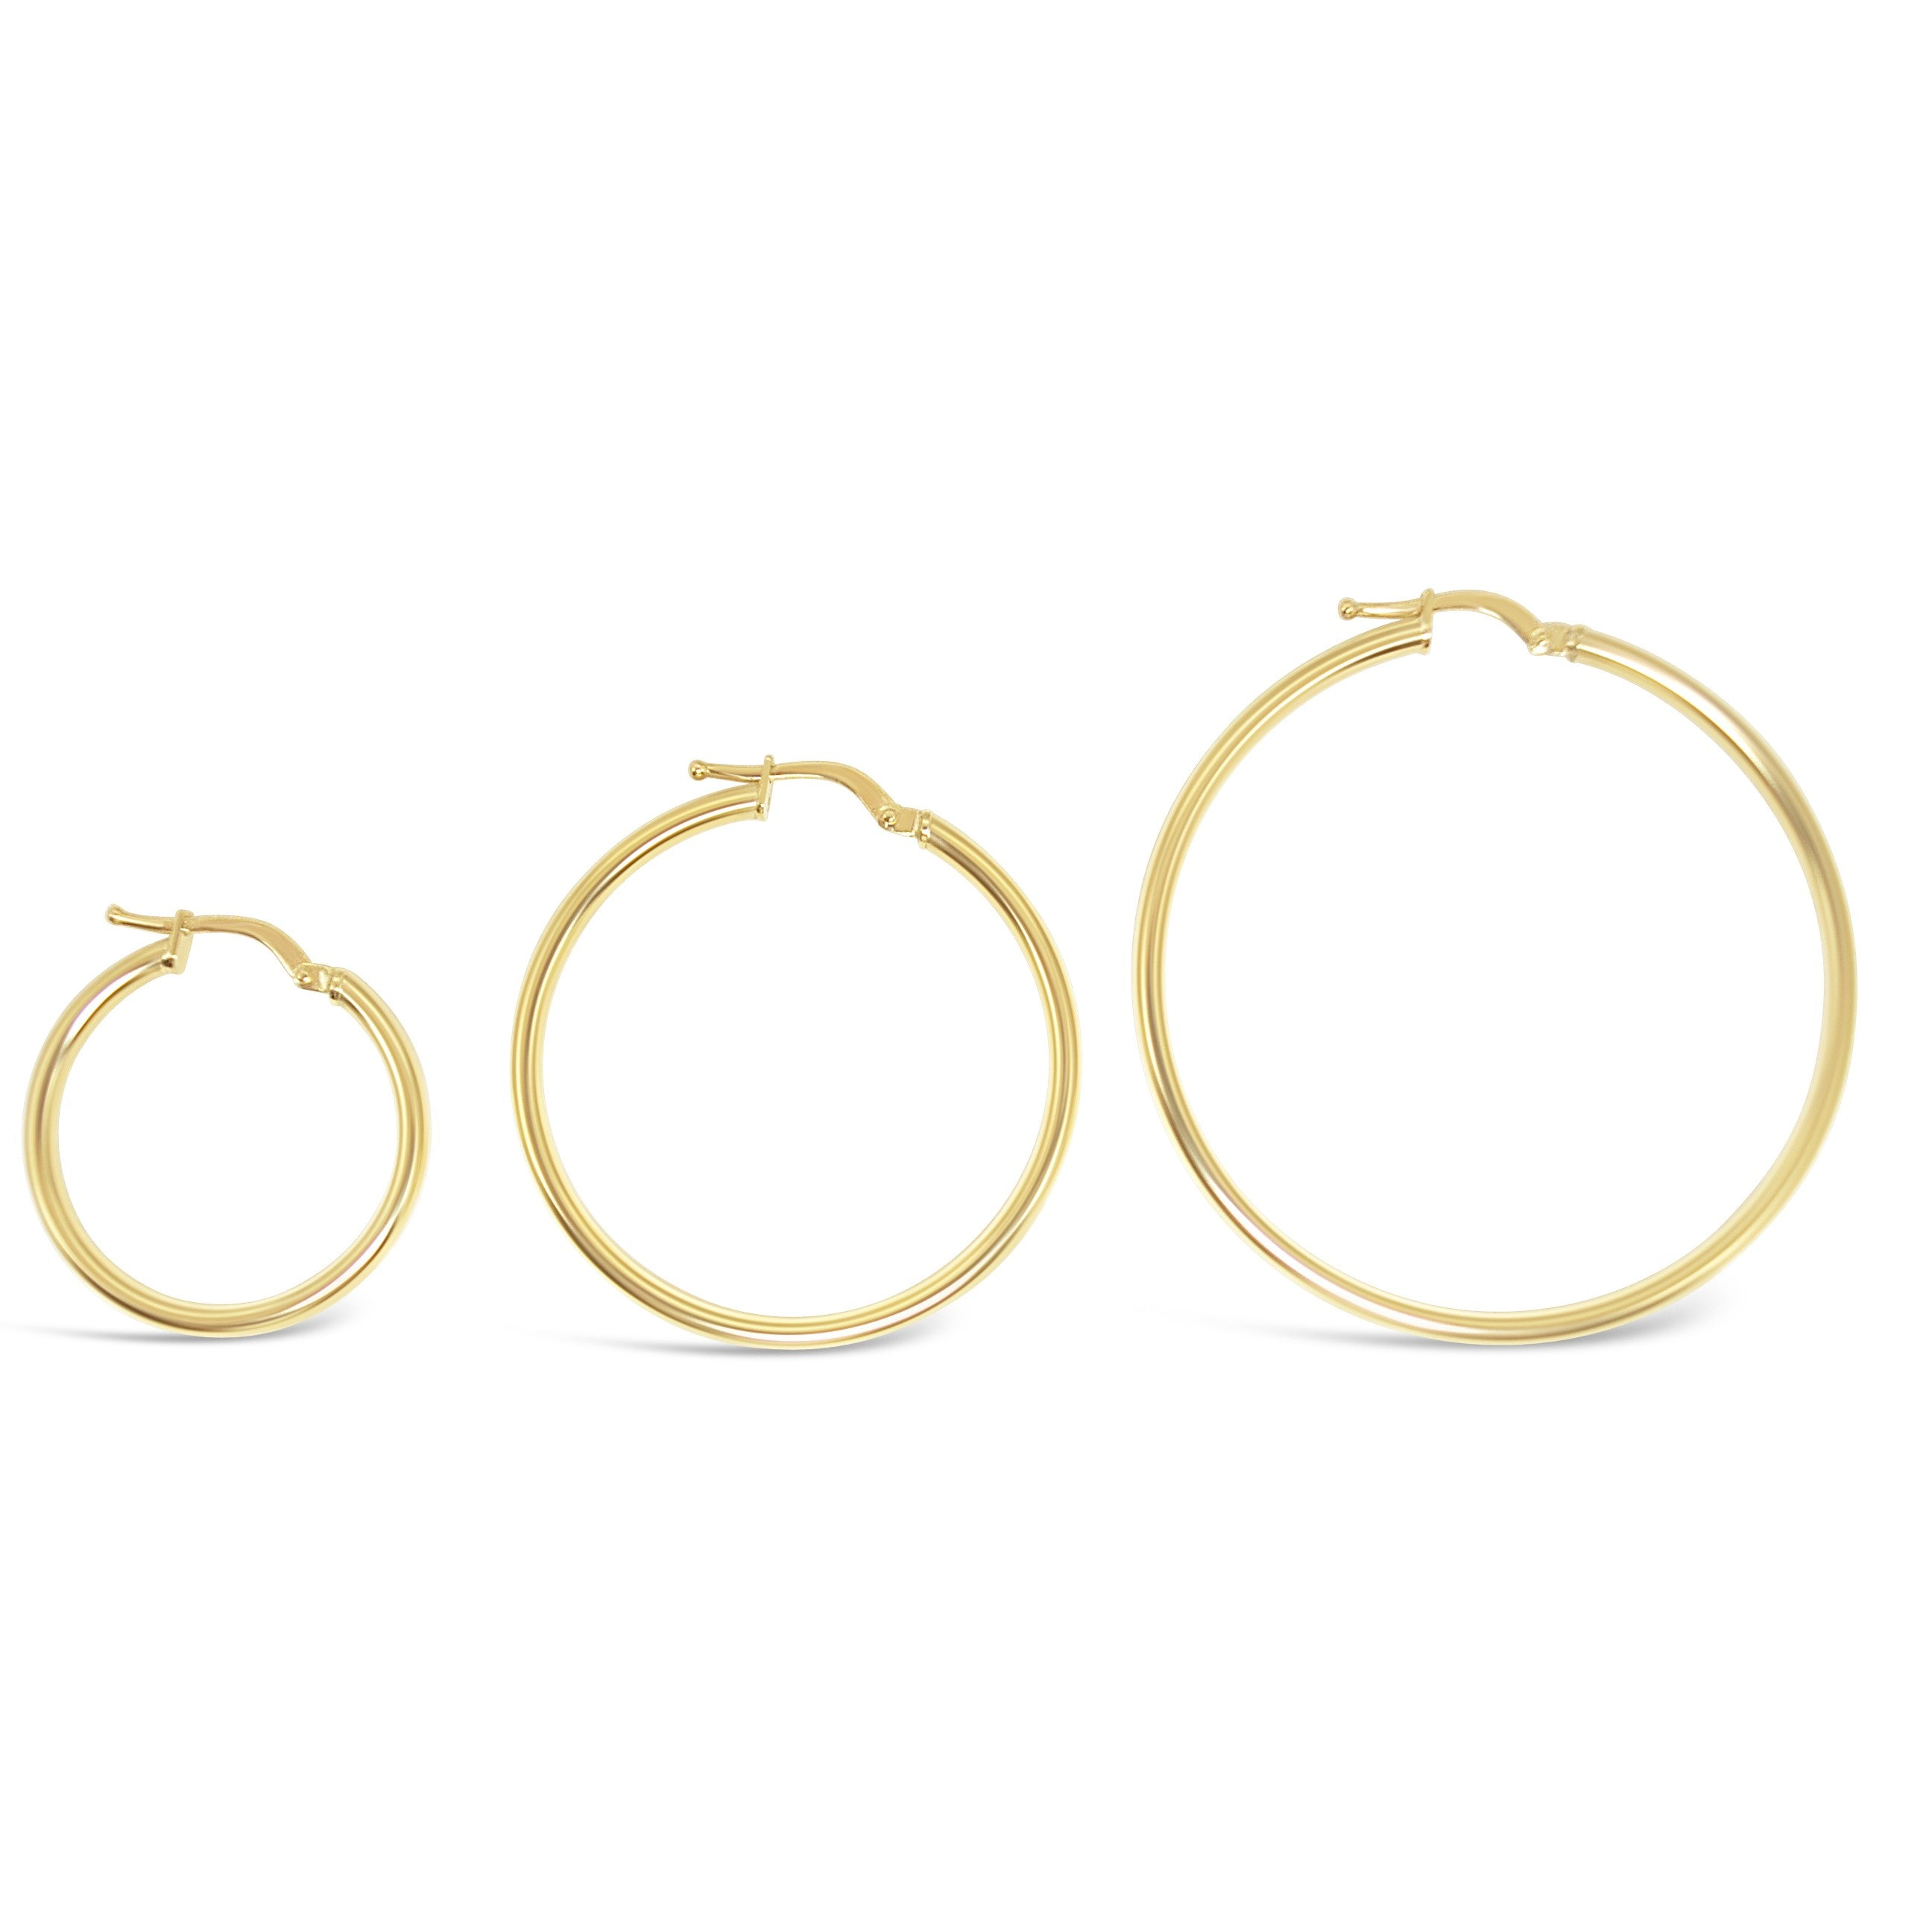 2mm Gold Tube Hoops